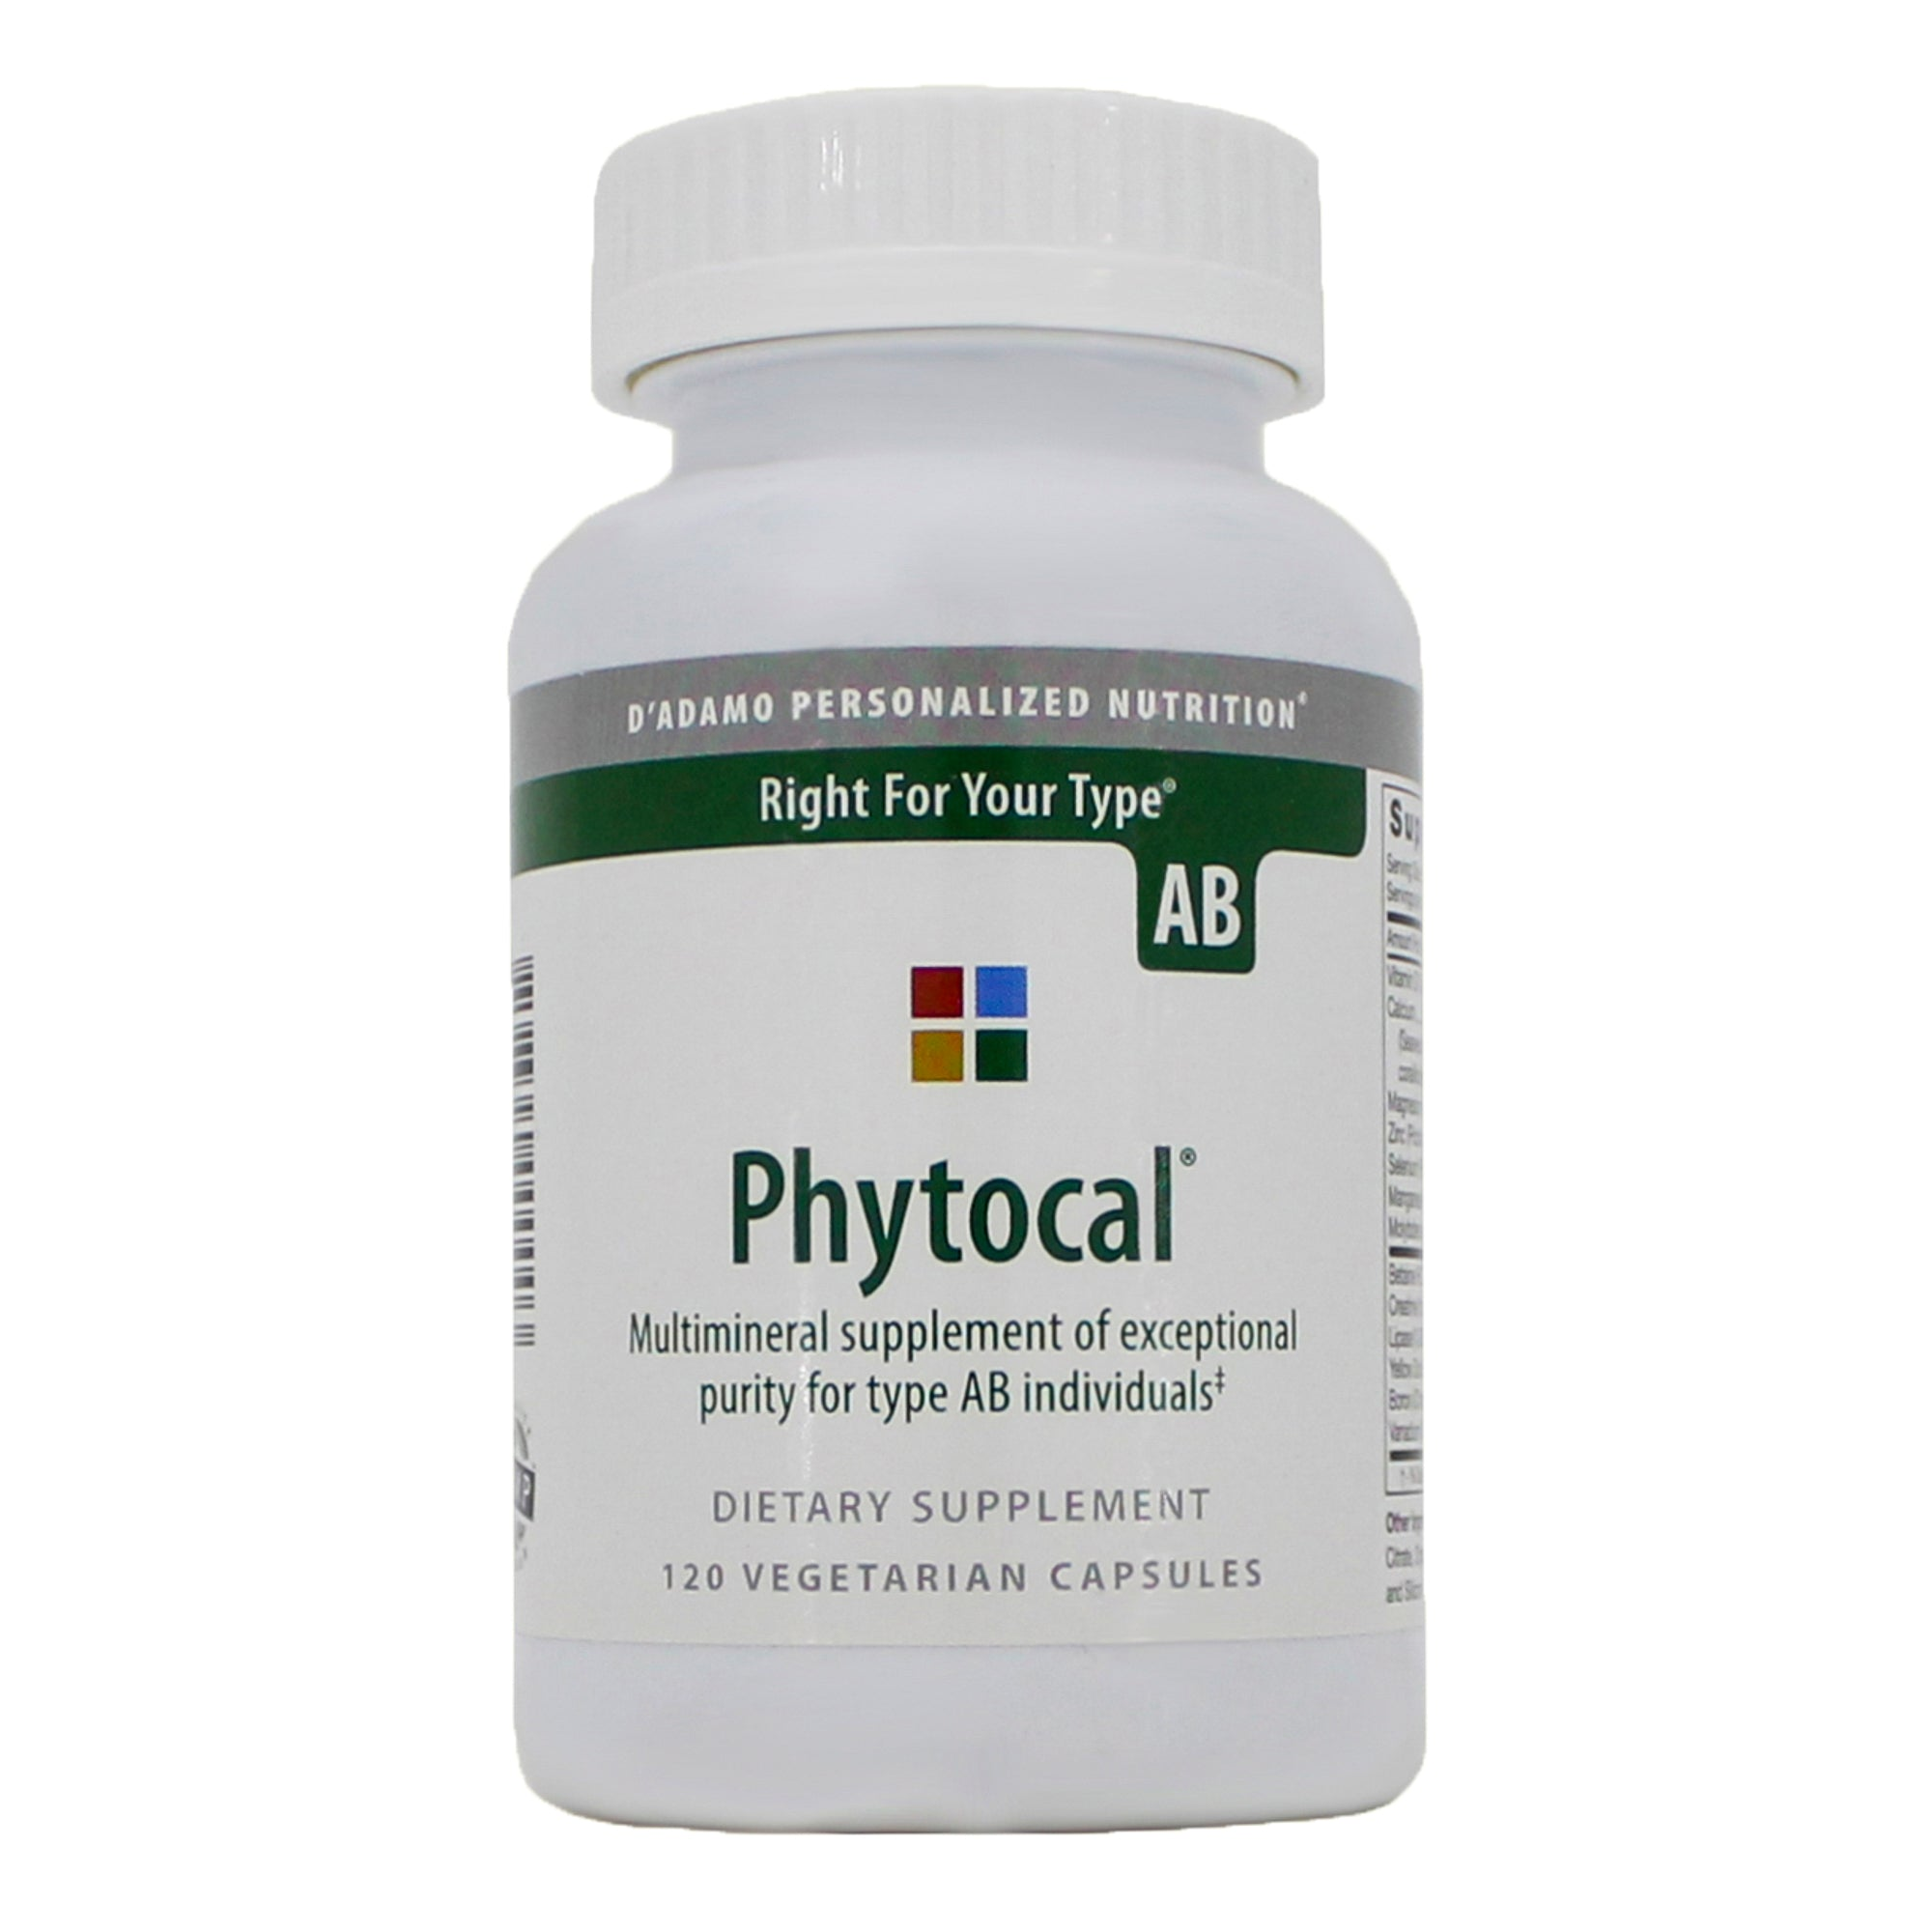 Phytocal AB 120 vcaps D'Adamo Personalized Nutrition